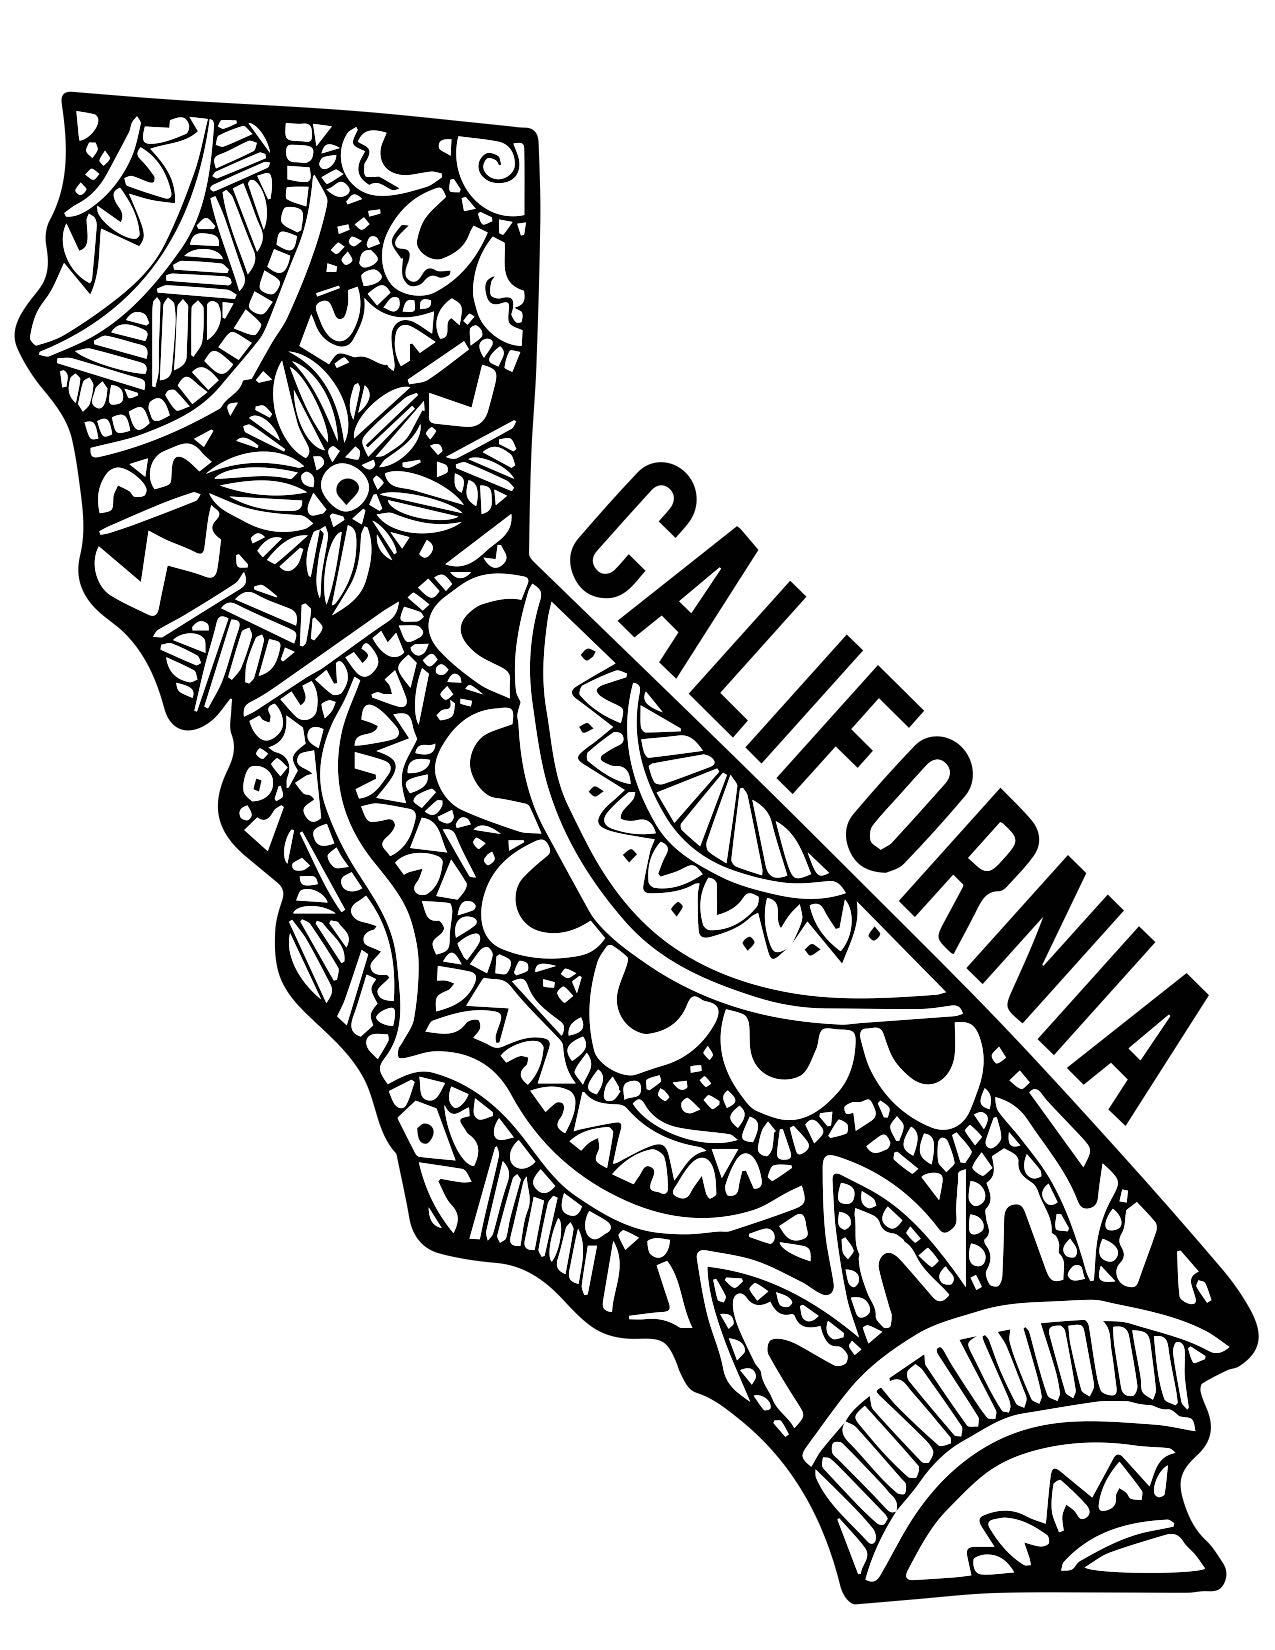 california zentangle sticker by emily hoehenrieder zentangle tattoo and piercings. Black Bedroom Furniture Sets. Home Design Ideas